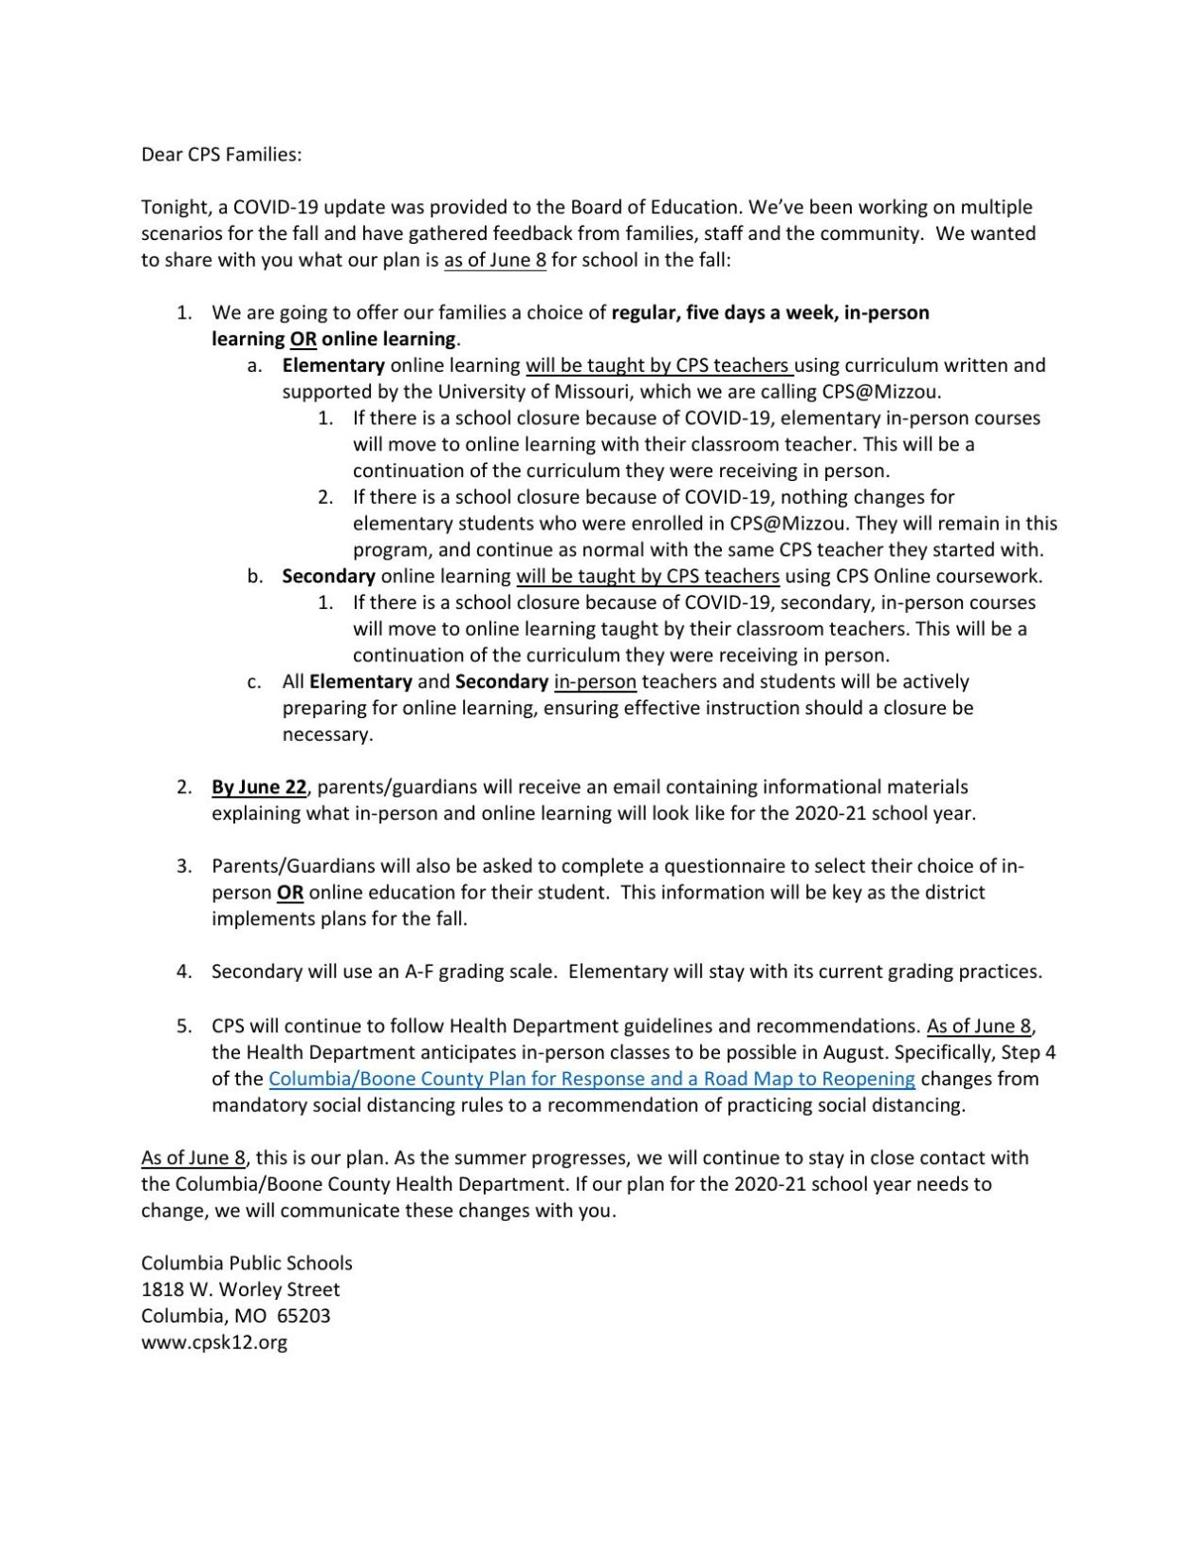 Letter to families about fall reopening